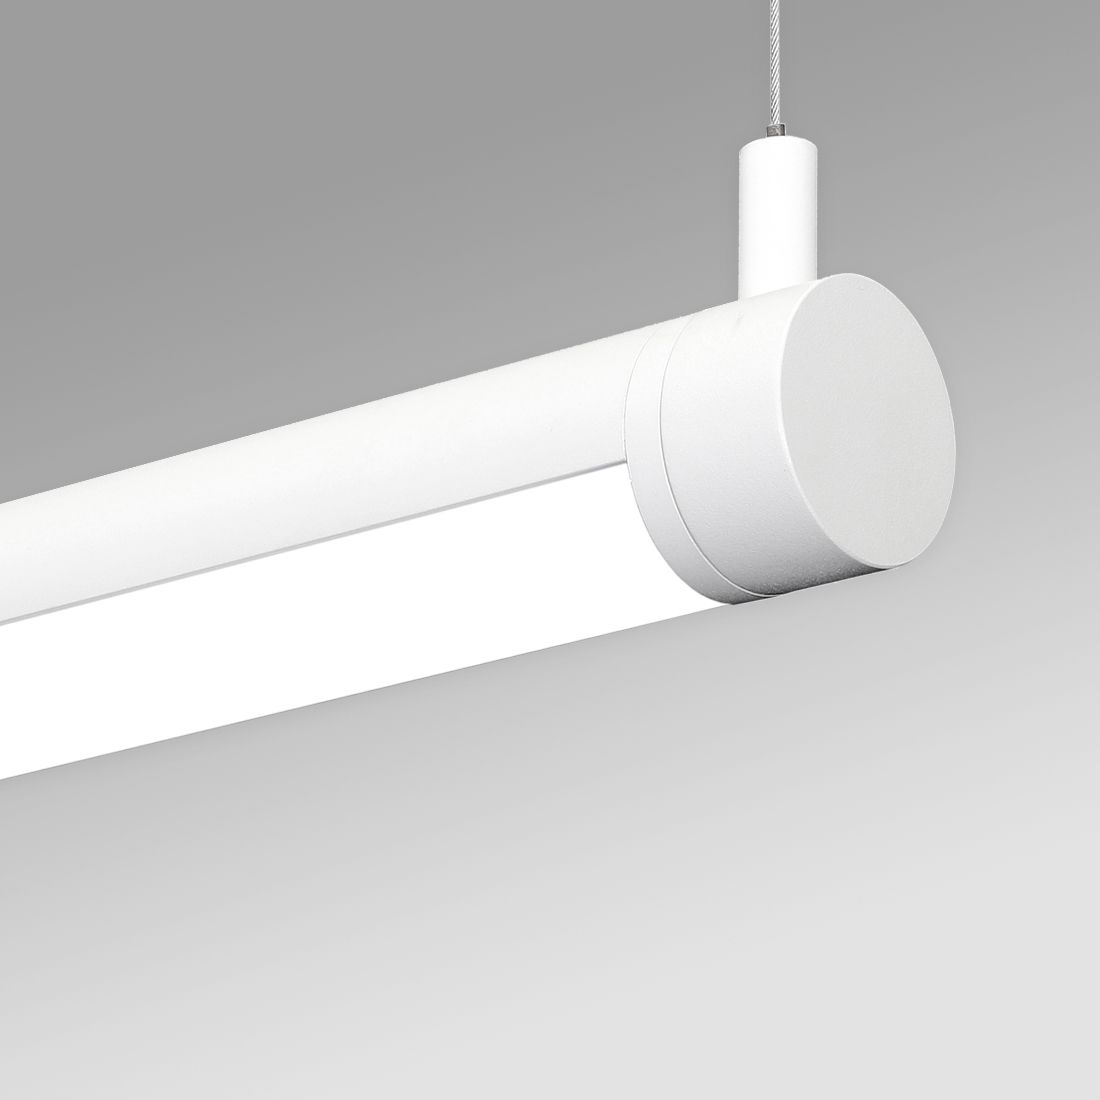 Alcon 12501 R2 P Rotatable Antimicrobial Led Pendant Tube Light Commercial Grade Healthcare Lighting